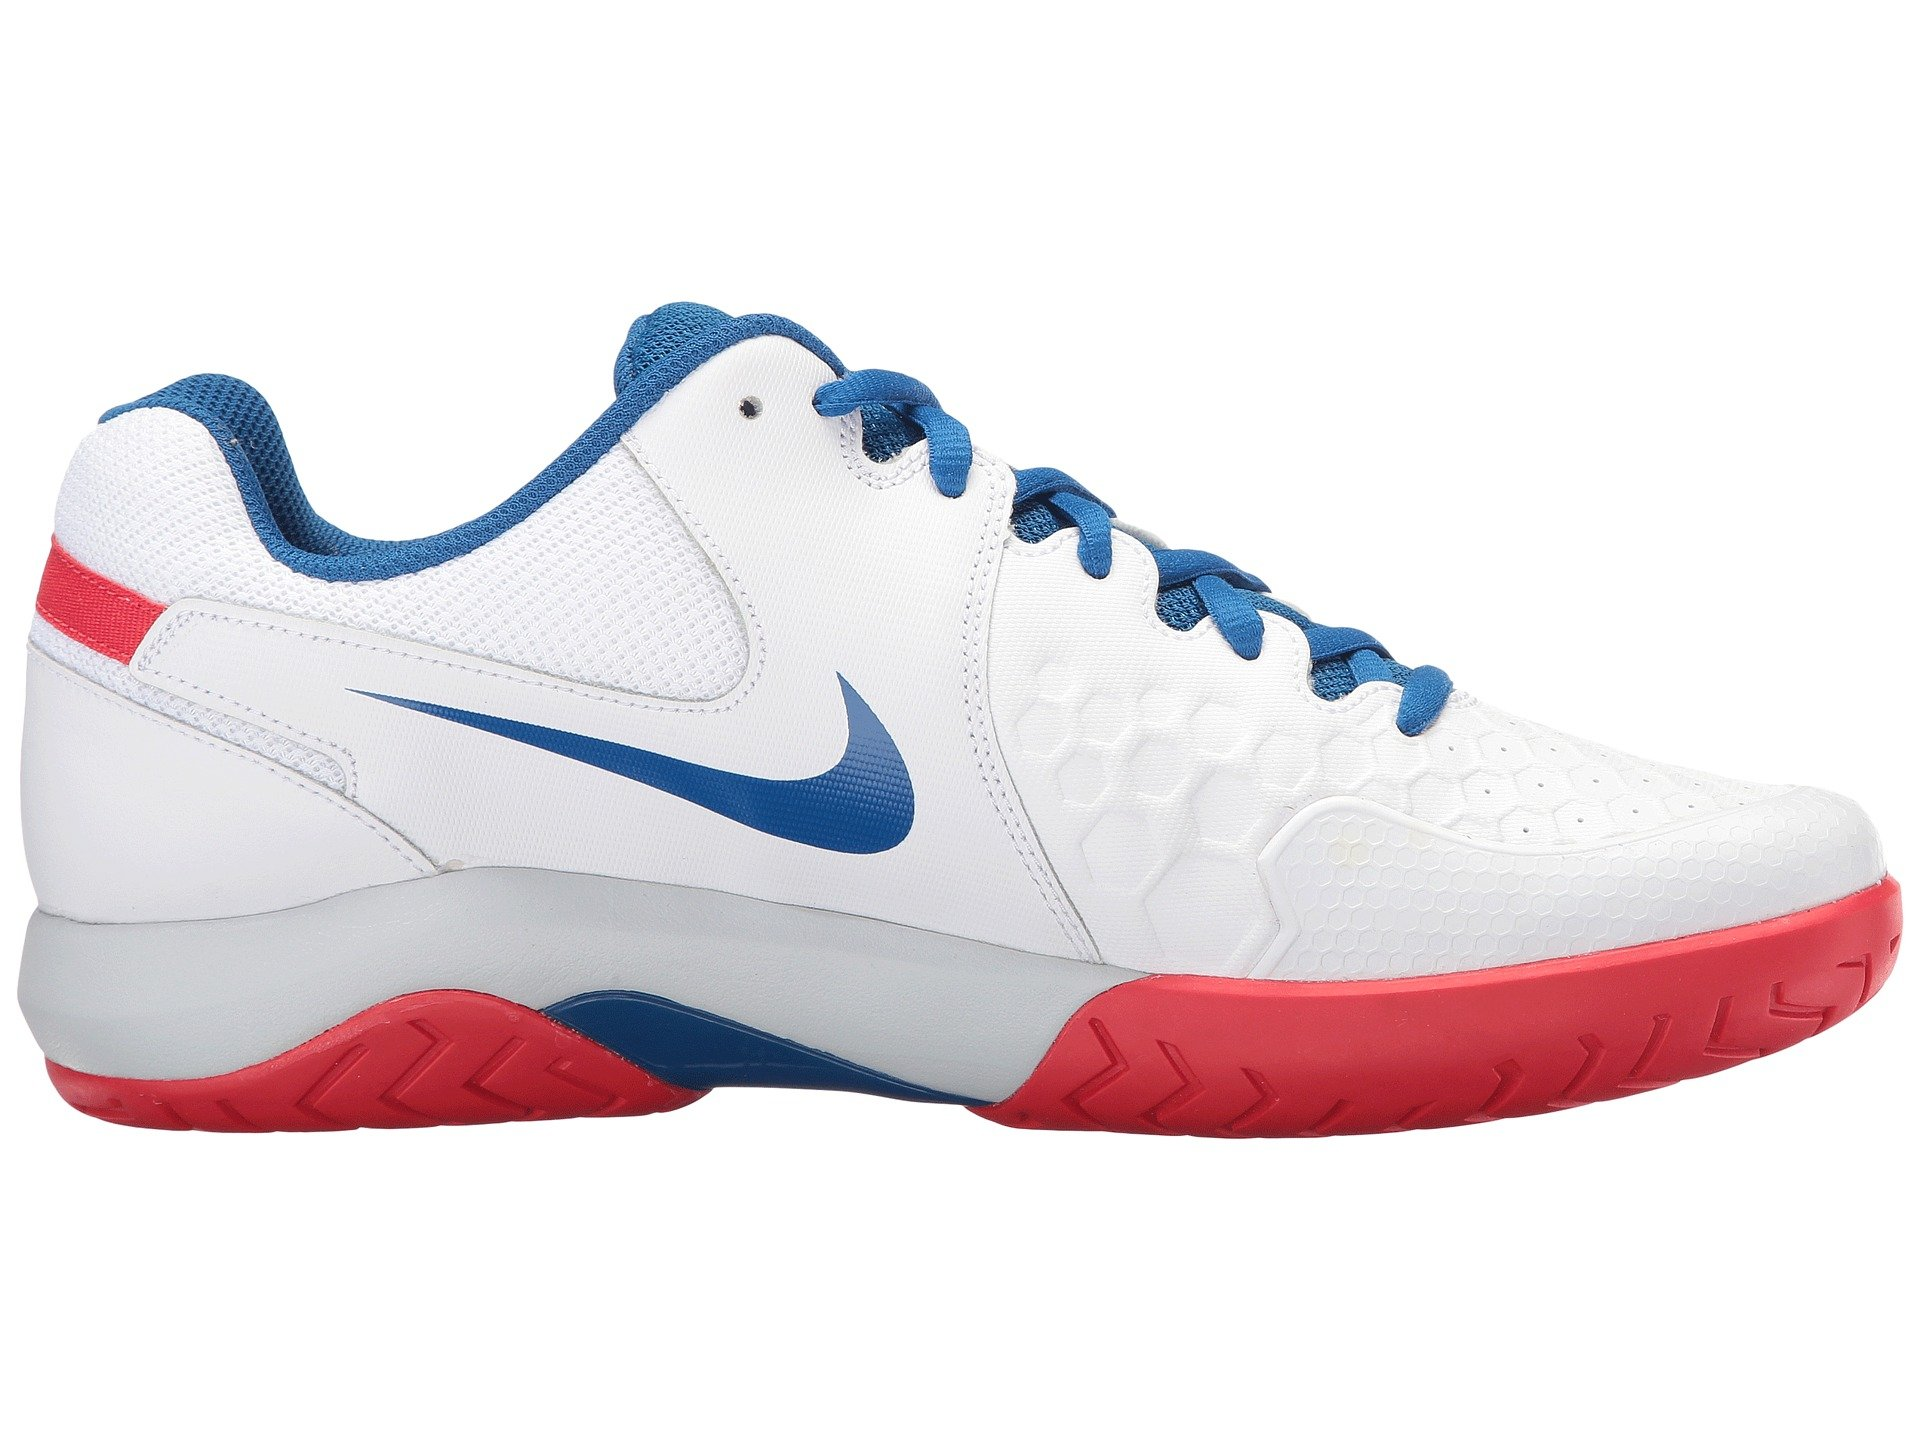 f52441930938 Shop Nike Air Zoom Resistance In White Blue Jay Pure Platinum Action Red